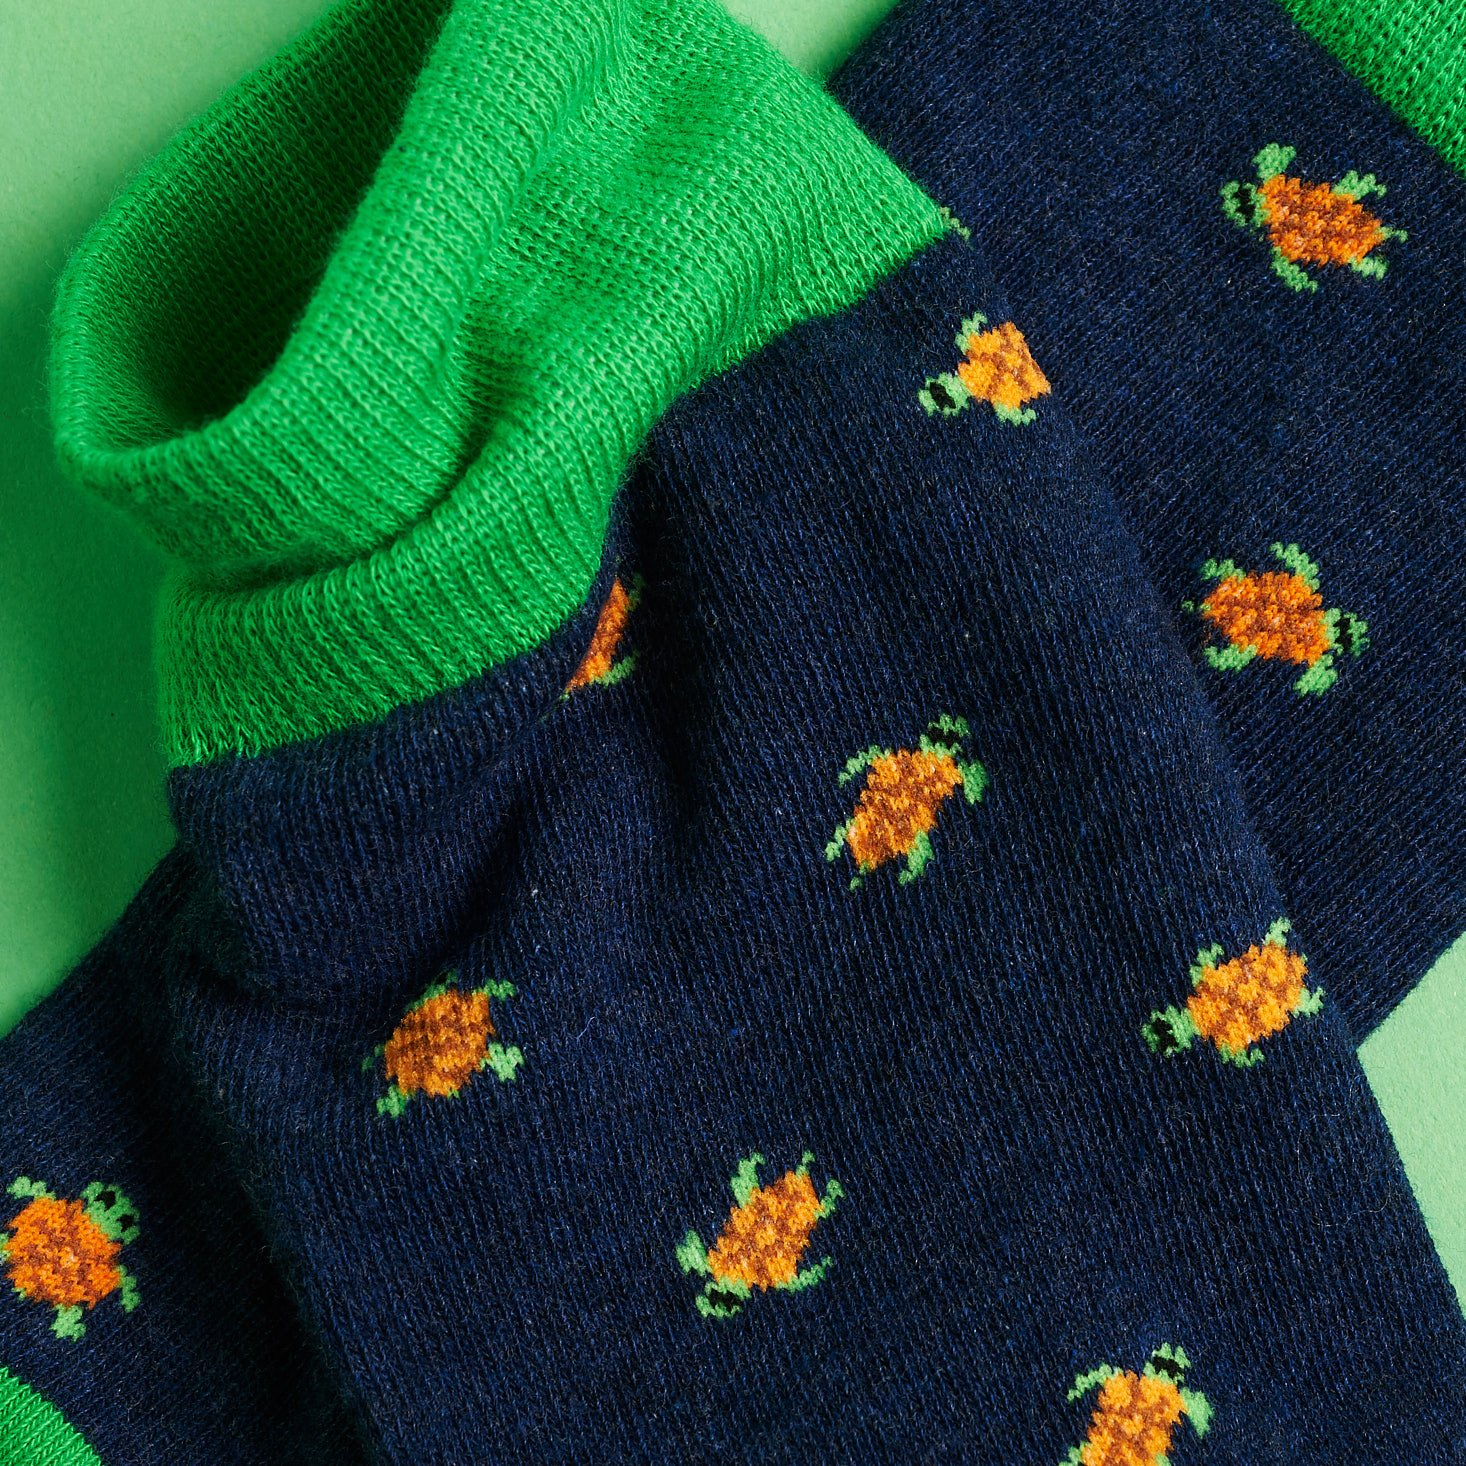 close up on the turtle designs and green cuffs of the socks